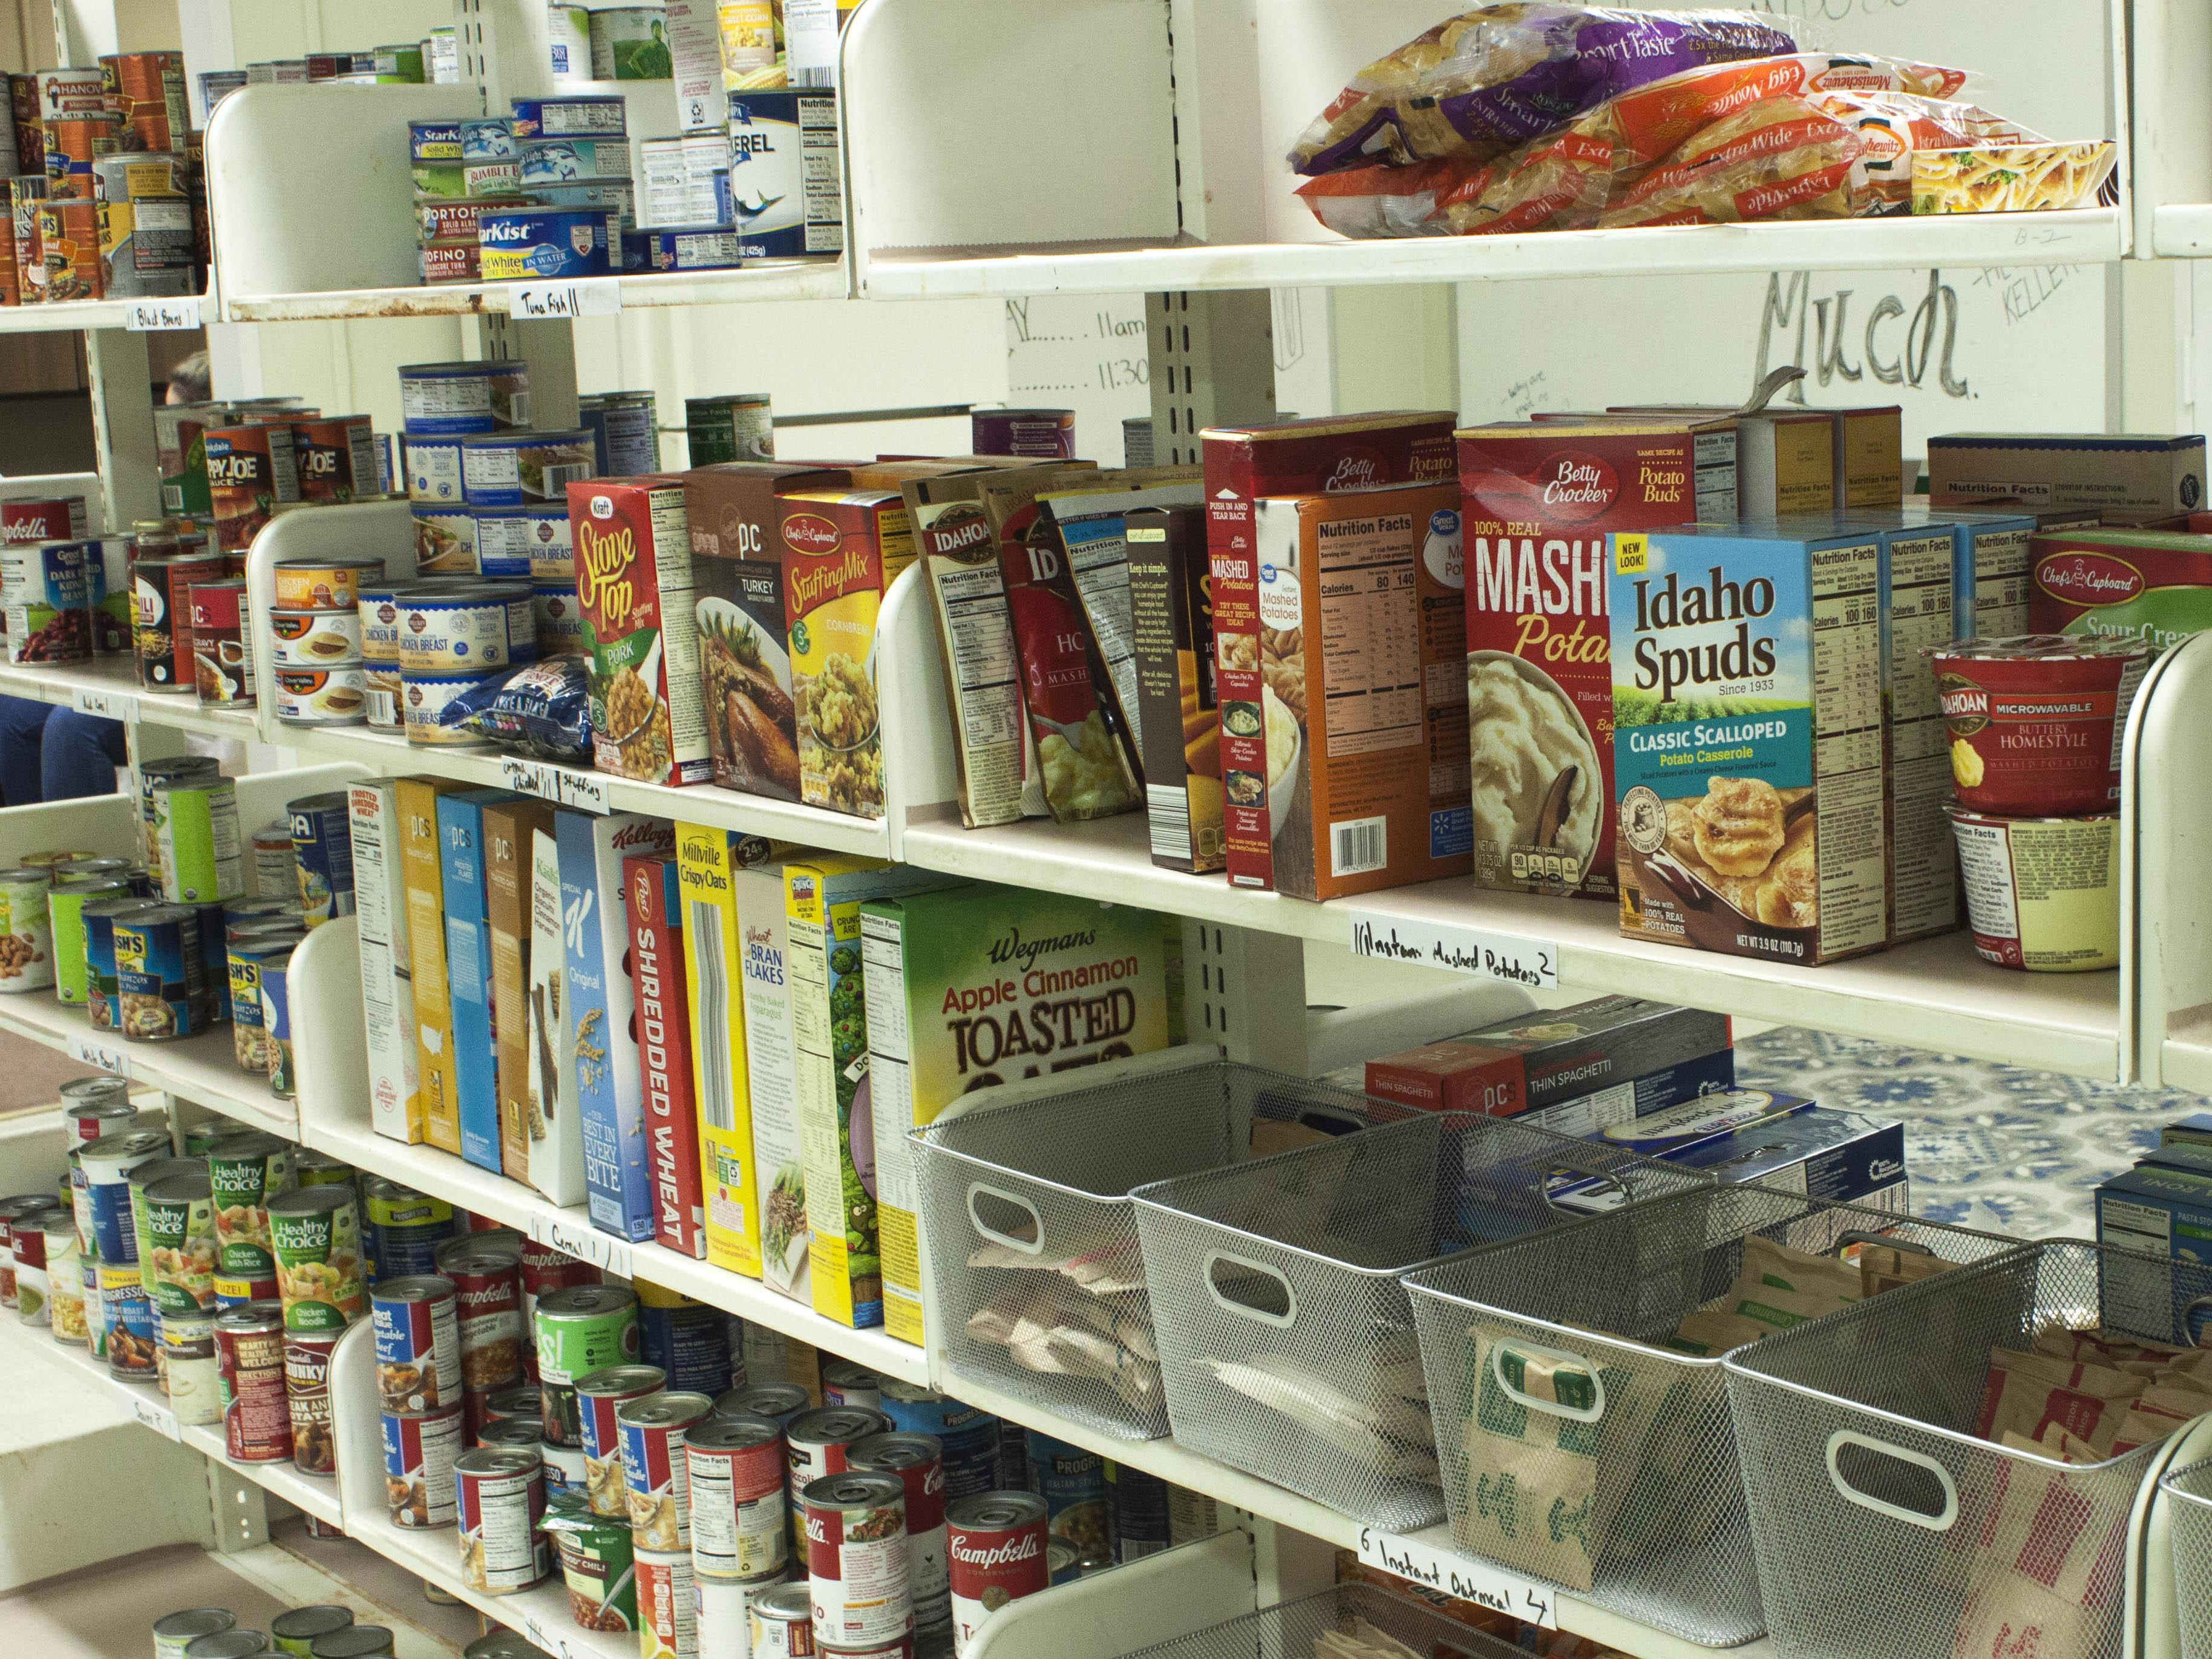 Food items on shelves in the SHOP pantry